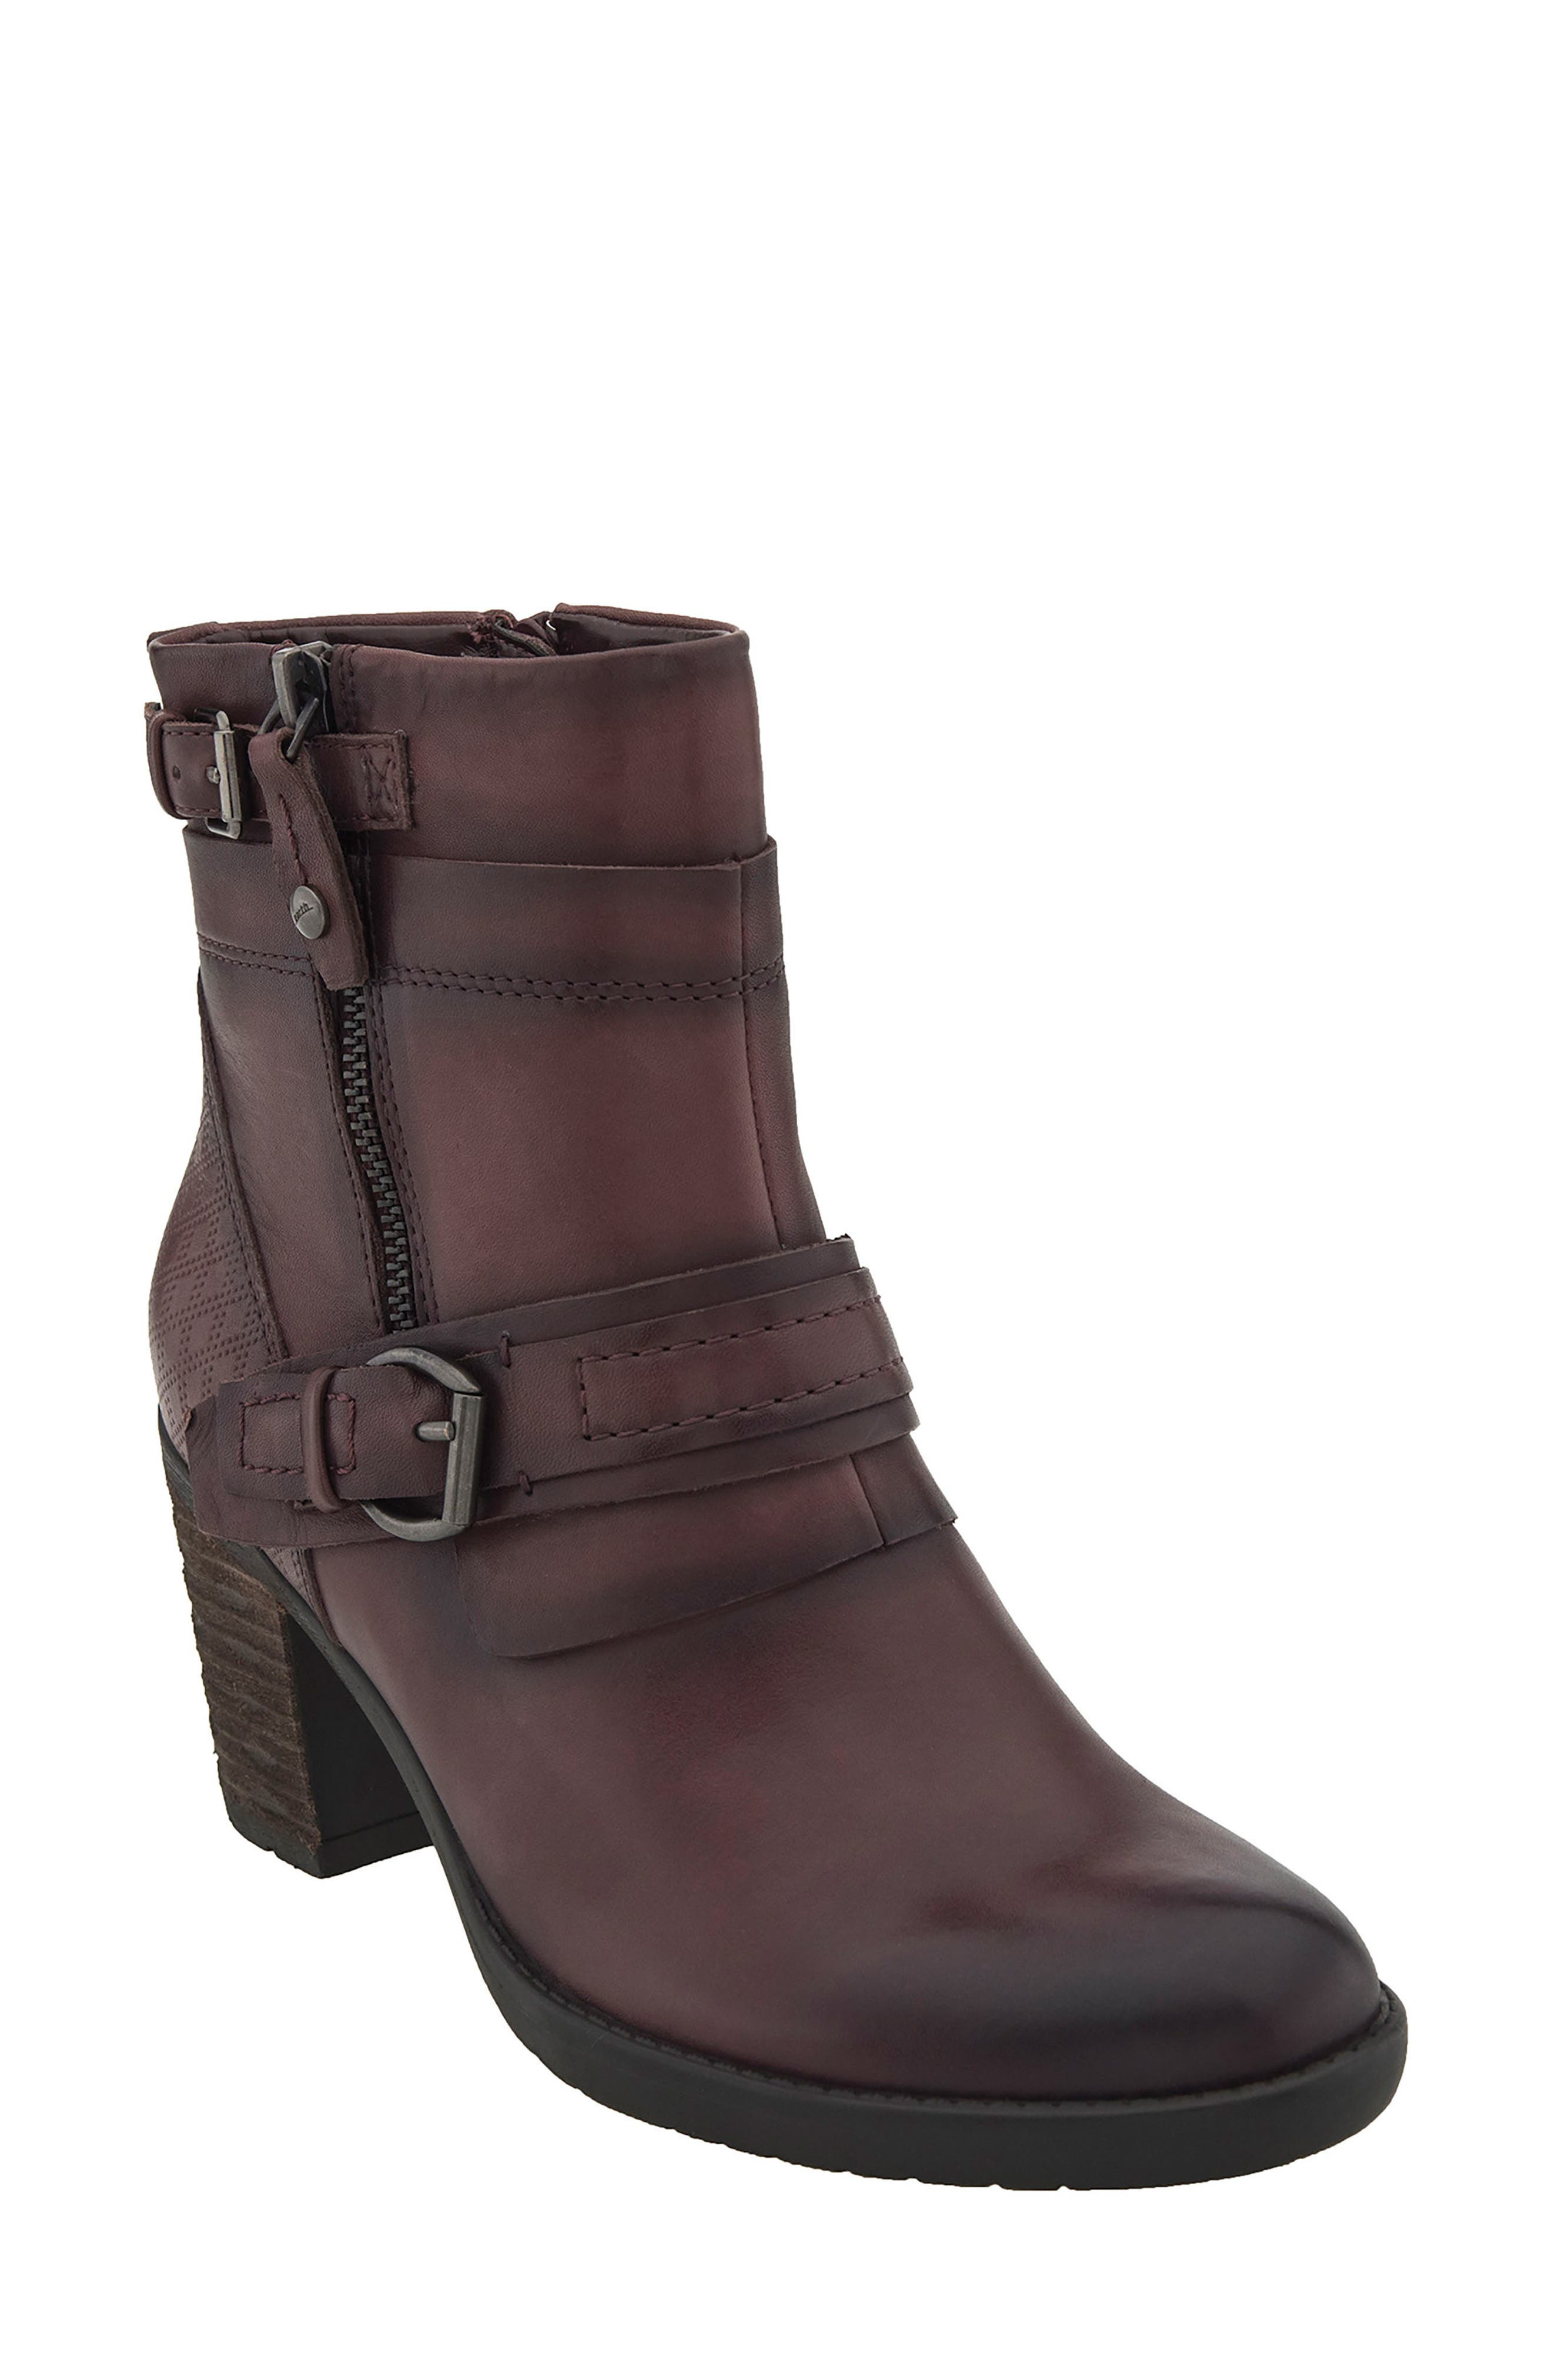 Alternate Image 1 Selected - Earth® Montana Bootie (Women)